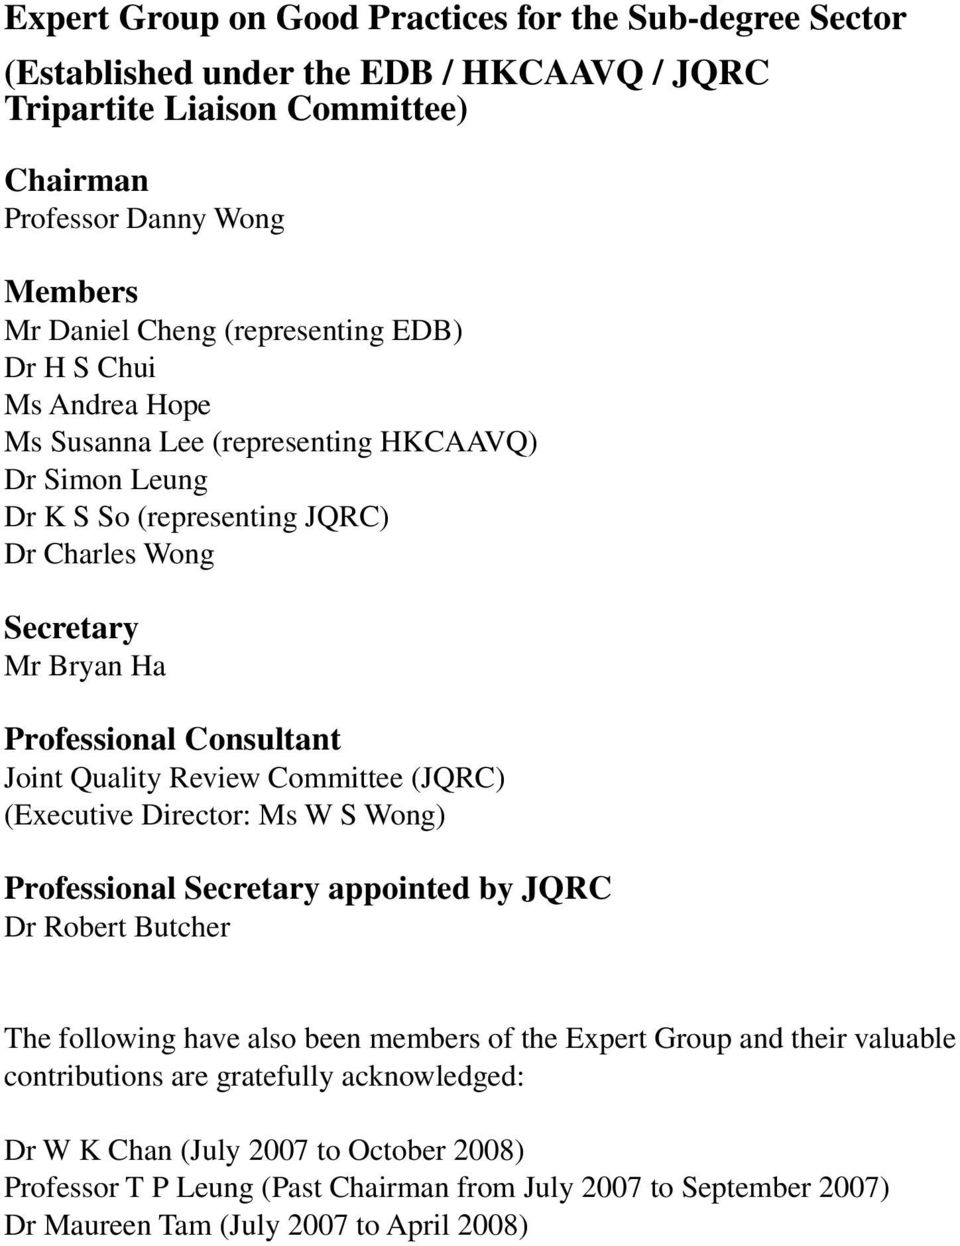 Joint Quality Review Committee (JQRC) (Executive Director: Ms W S Wong) Professional Secretary appointed by JQRC Dr Robert Butcher The following have also been members of the Expert Group and